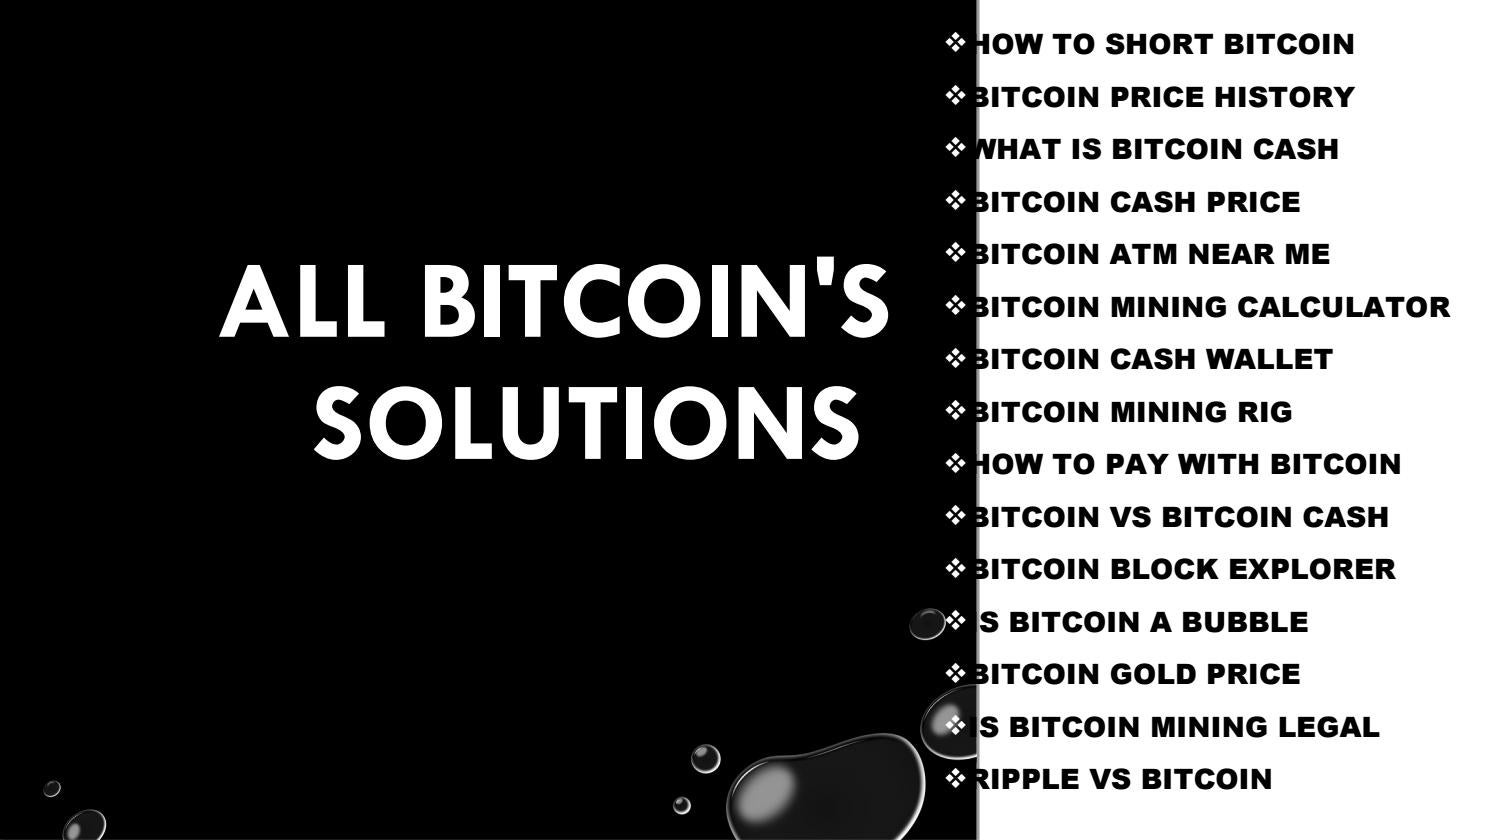 All Bitcoin's solutions by Holly Cox - issuu